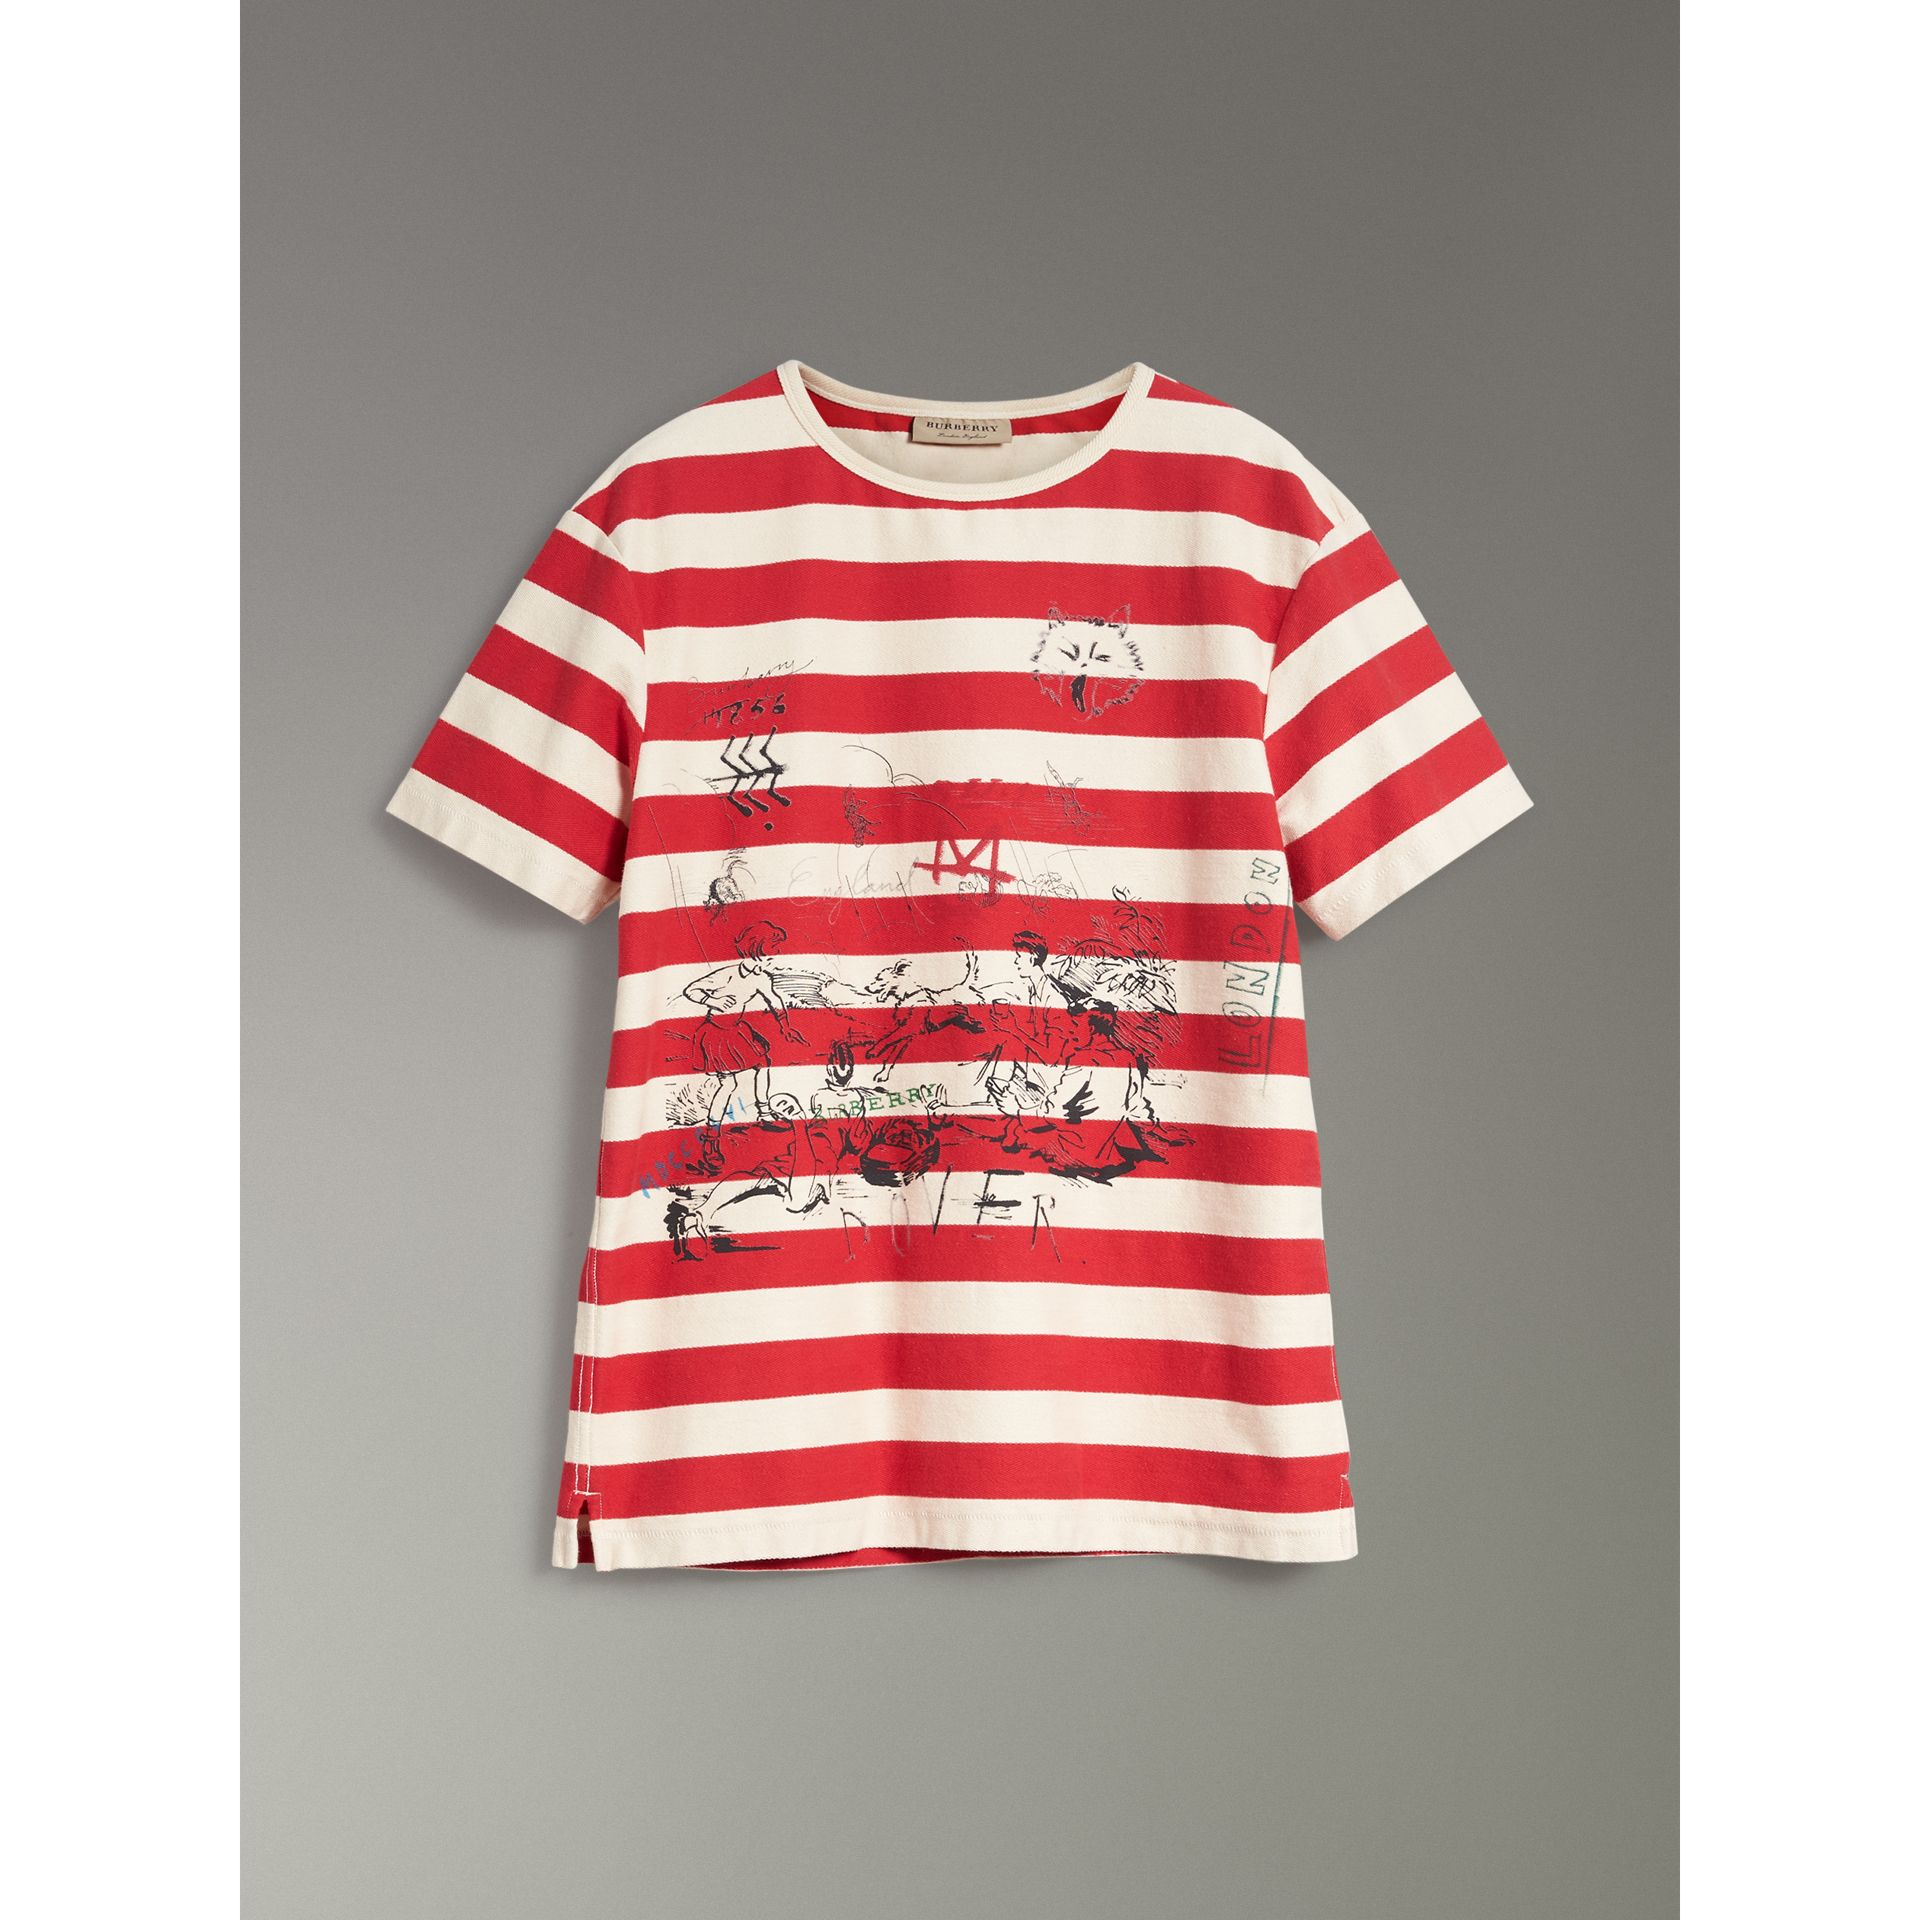 Adventure Print Striped Cotton T-shirt in Off White/parade Red - Men | Burberry - gallery image 3